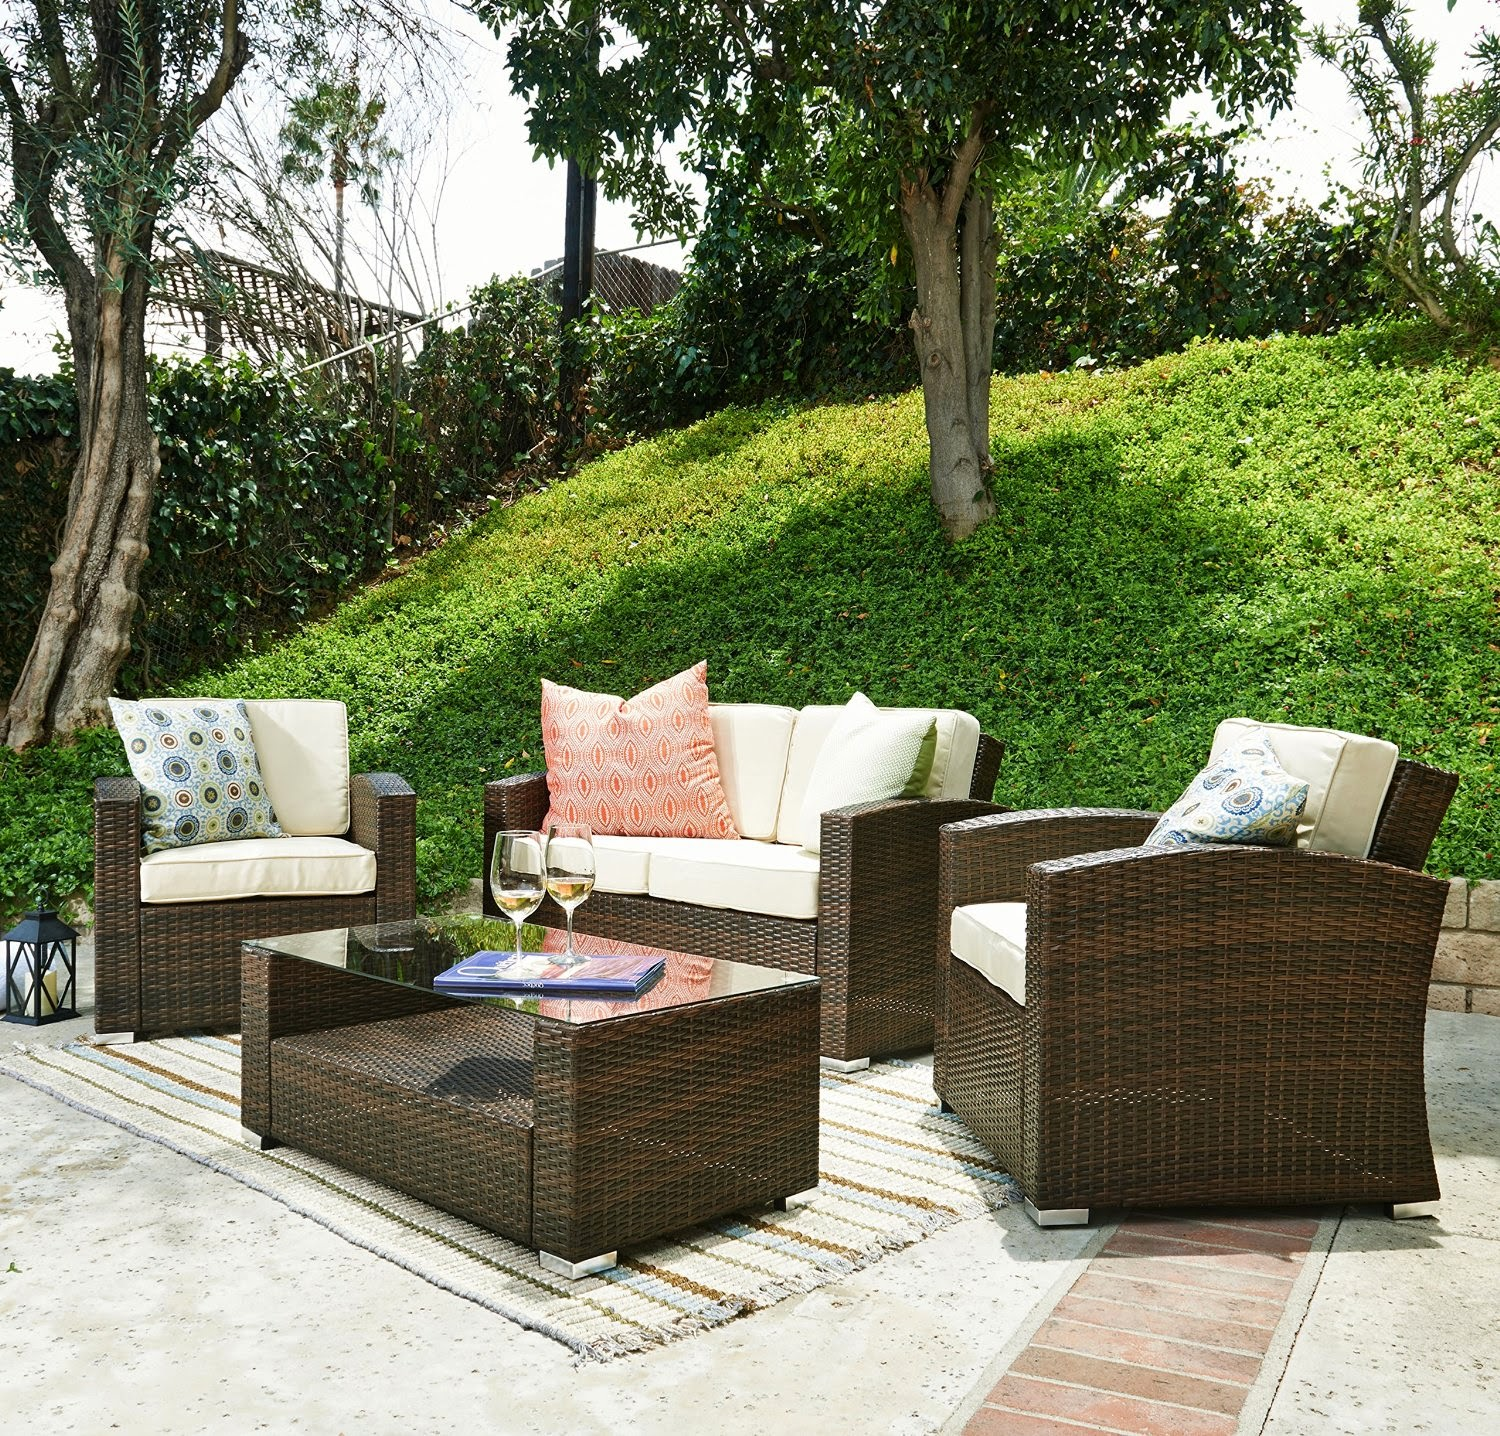 Discount special sale off 58 for outdoor furniture sofa for Discount patio cushions sales